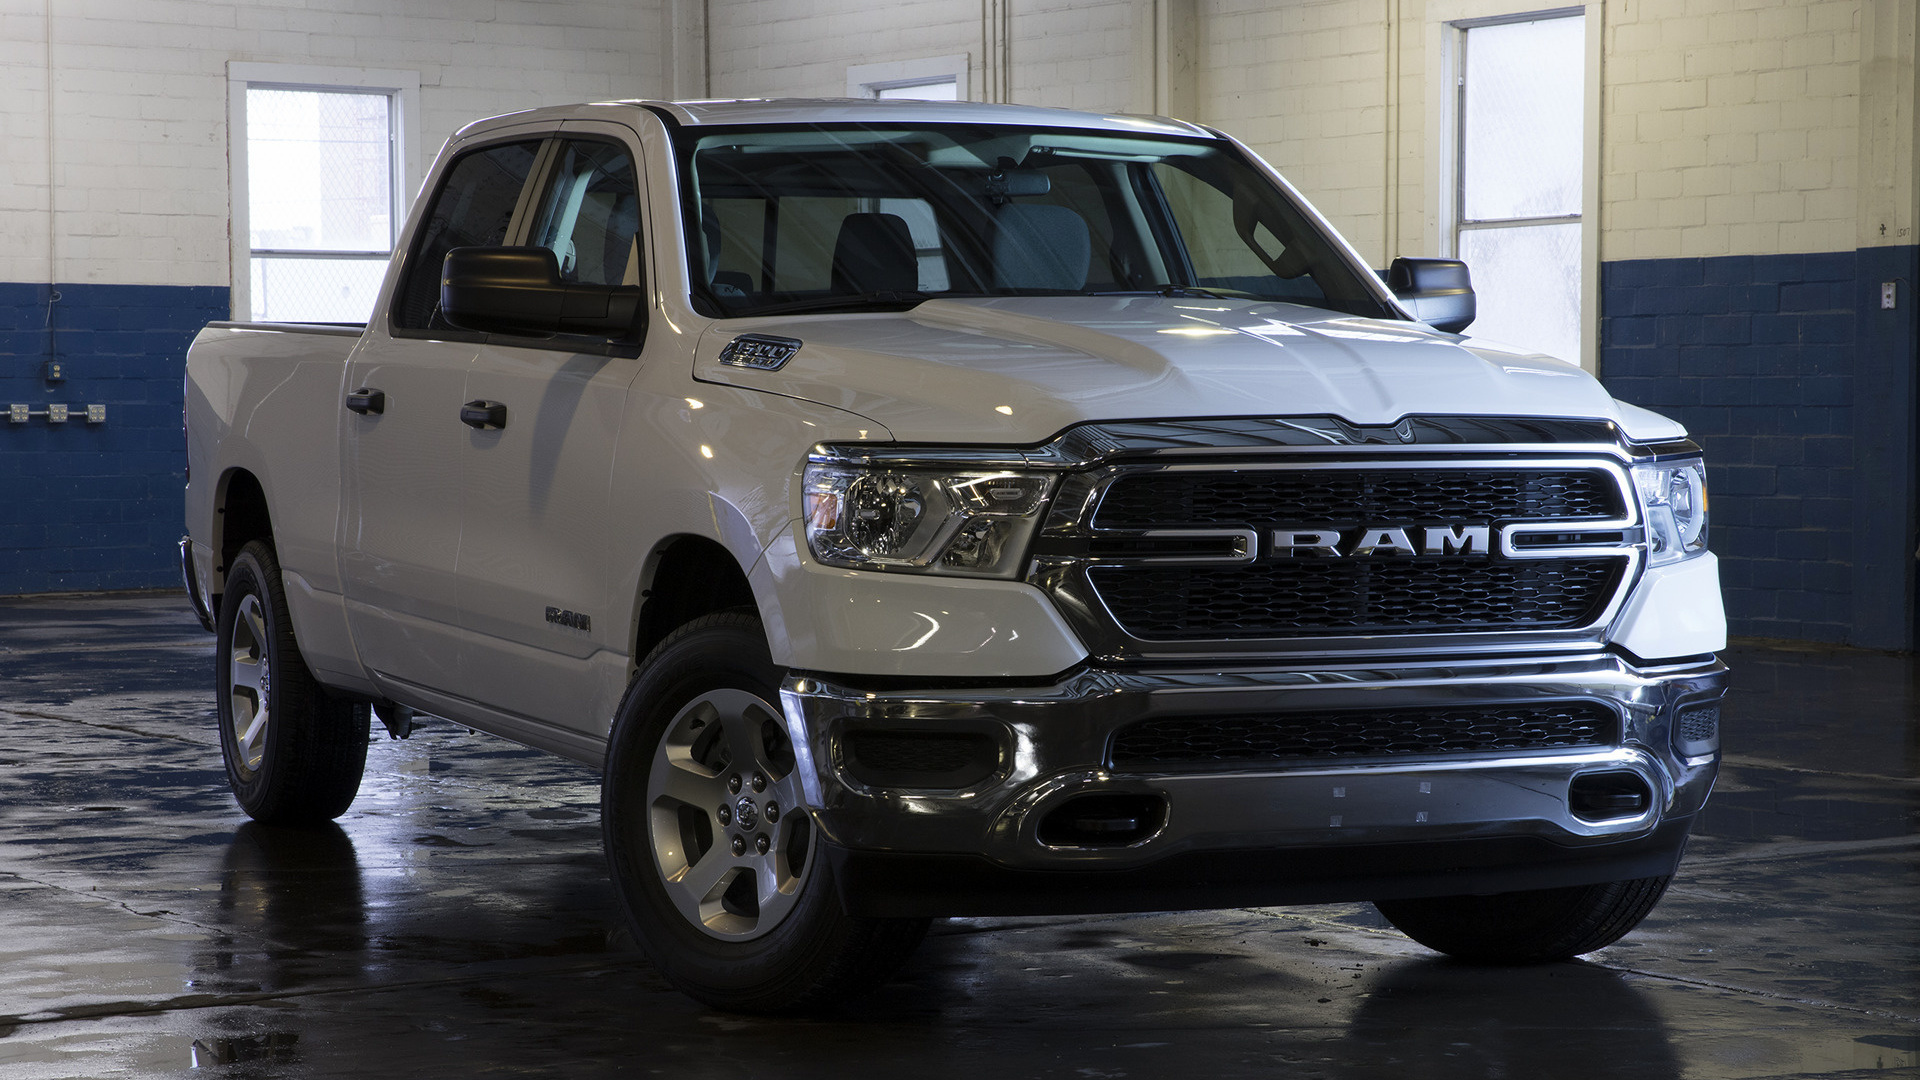 New Ram Truck >> 2019 Ram 1500 Tradesman Crew Cab Chrome Appearance Package [Short] - Wallpapers and HD Images ...